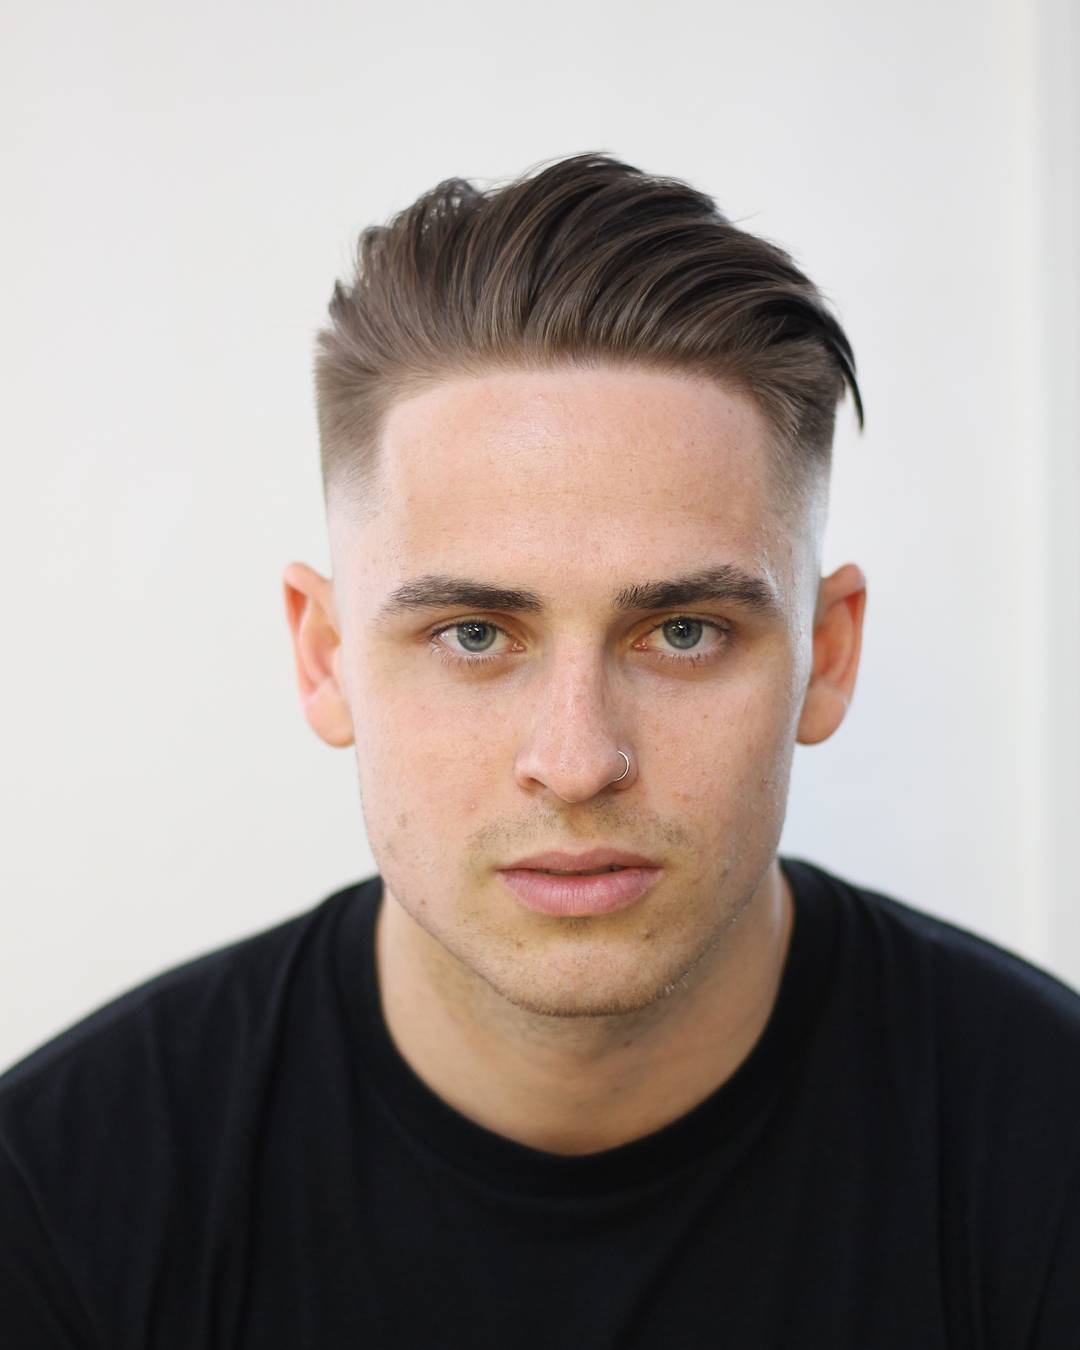 barber_djirlauw-medium-hairstyle-men